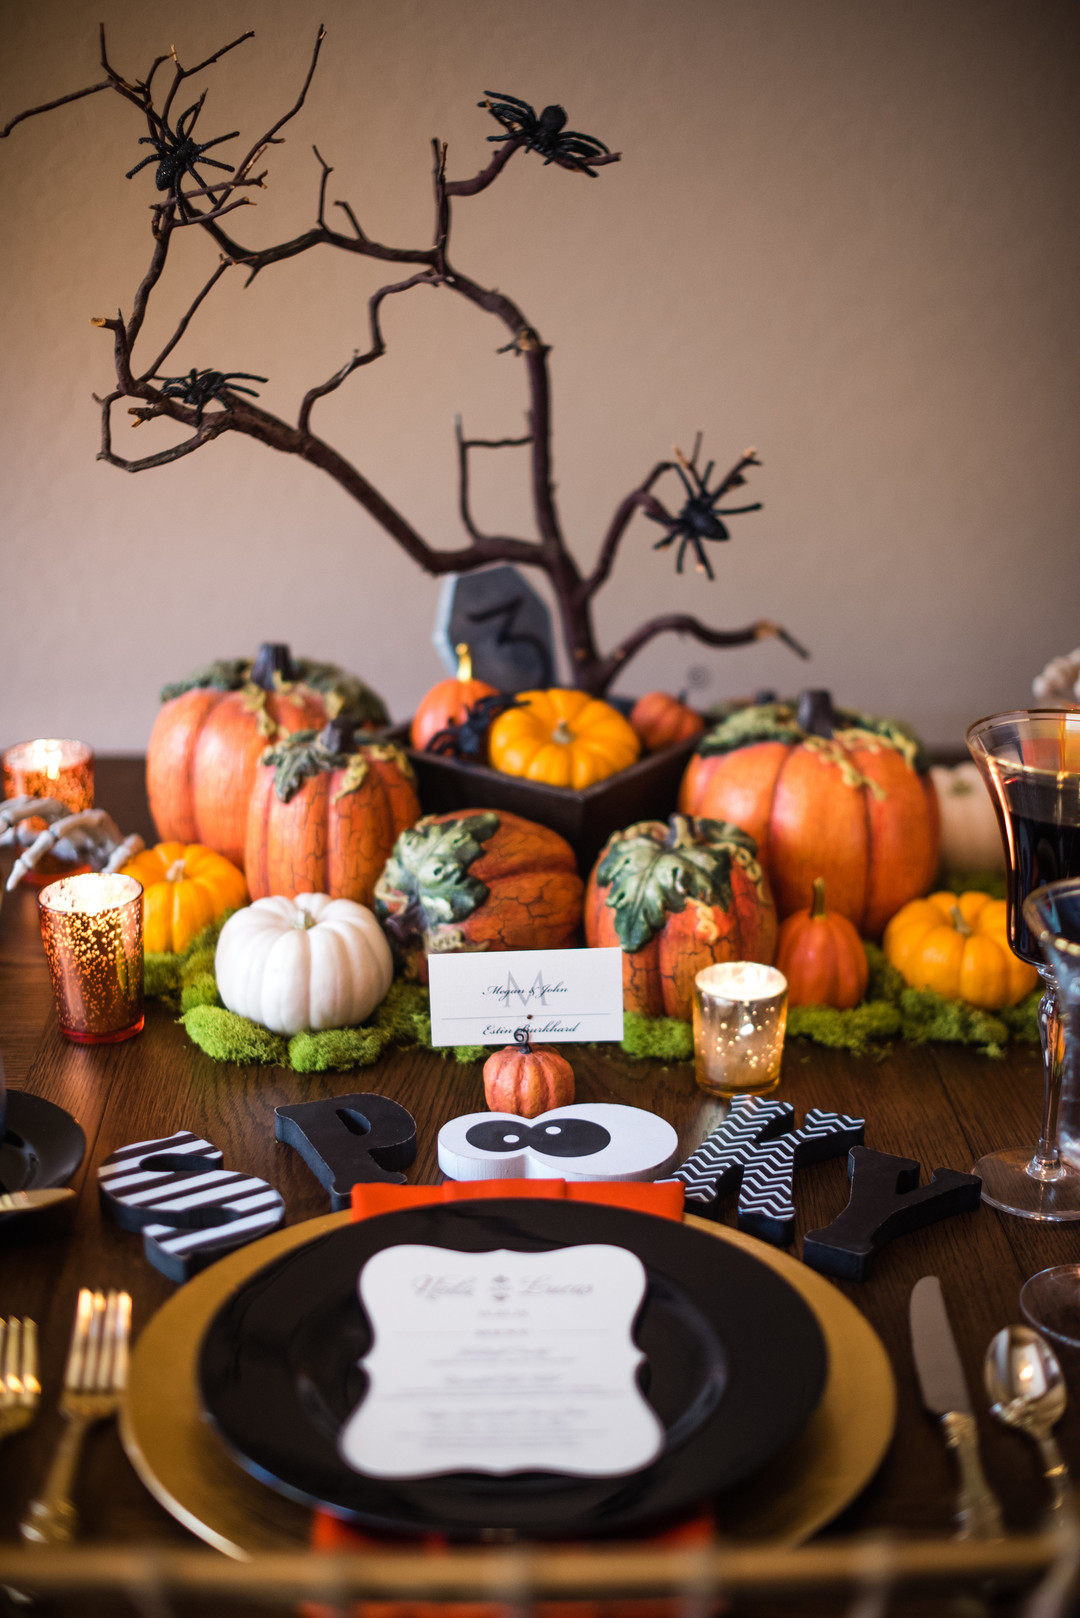 spooky Halloween Tablescape Ideas and Centerpiece with pumpkins and spiders